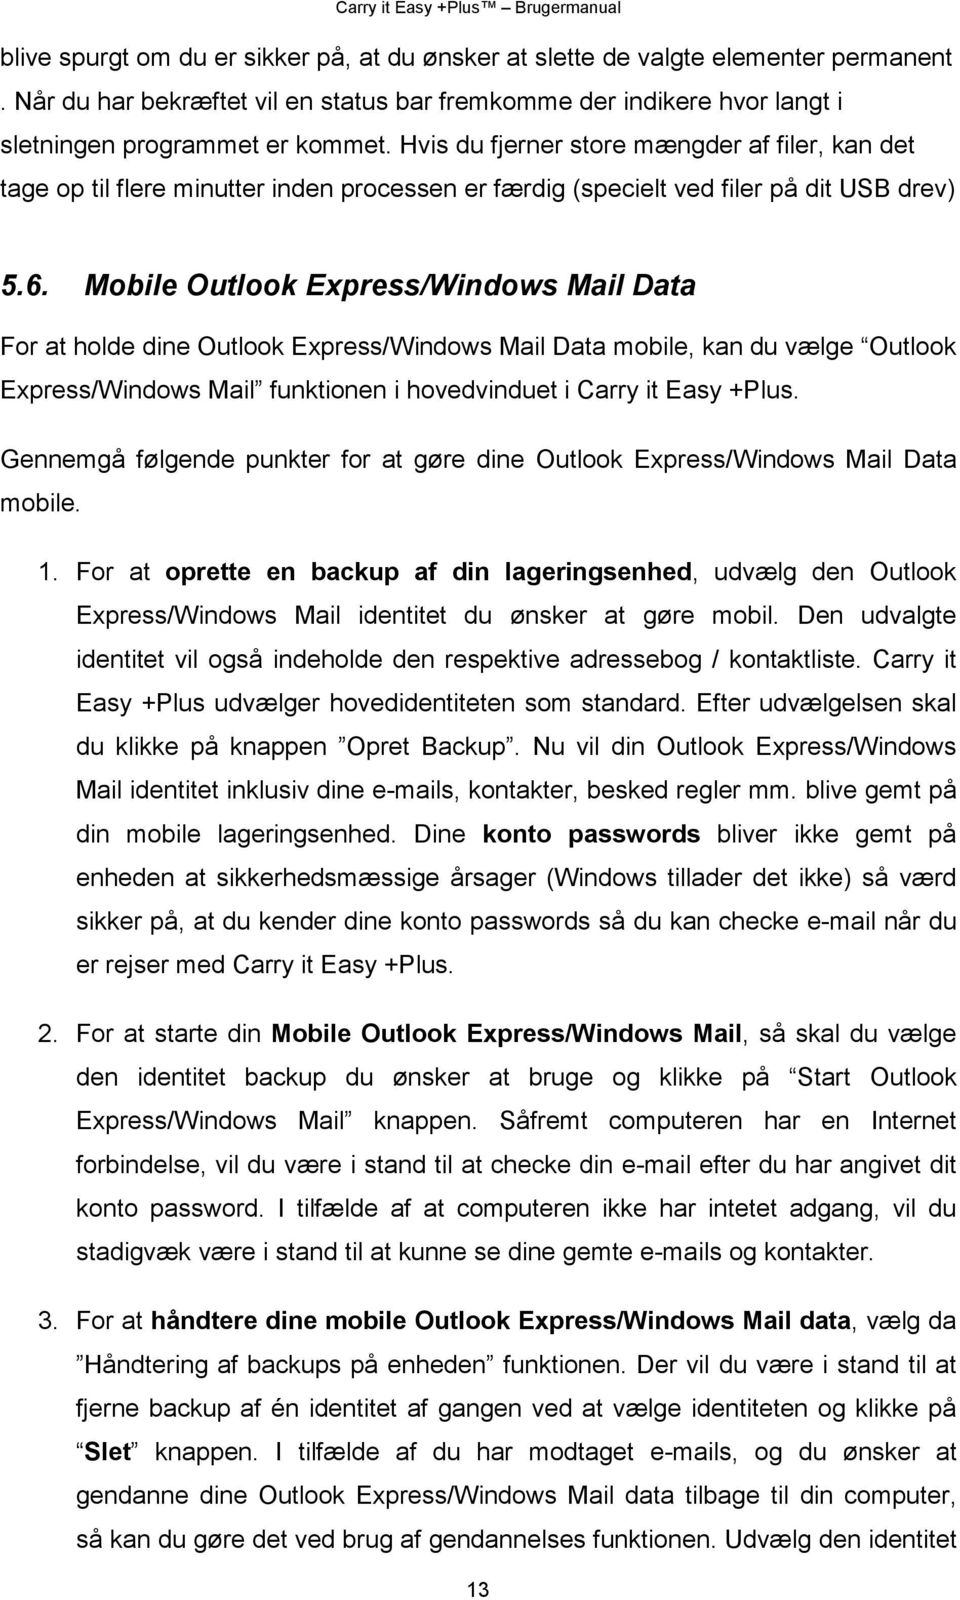 Mobile Outlook Express/Windows Mail Data For at holde dine Outlook Express/Windows Mail Data mobile, kan du vælge Outlook Express/Windows Mail funktionen i hovedvinduet i Carry it Easy +Plus.